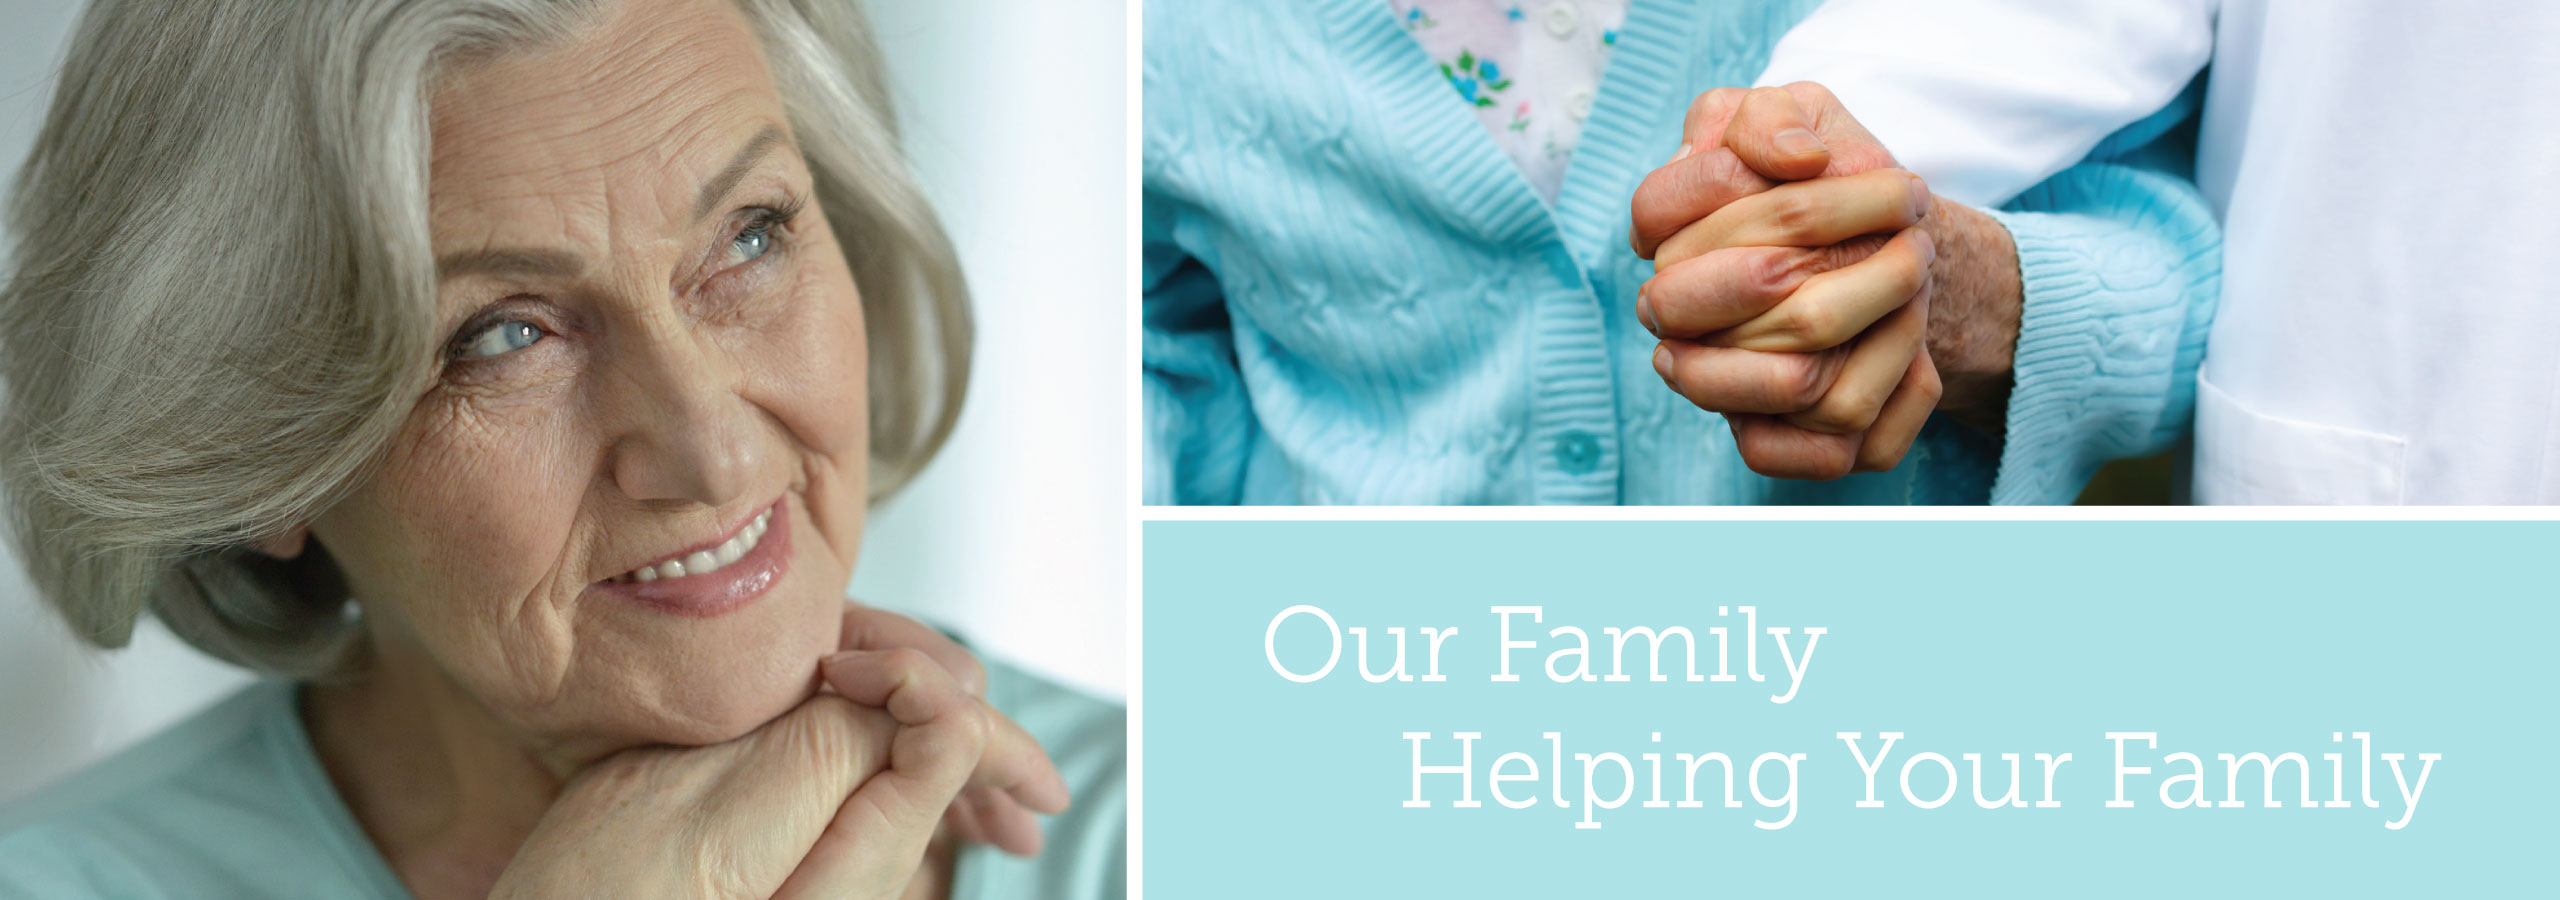 Home Care and Respite Services, Our Family Helping Your Family